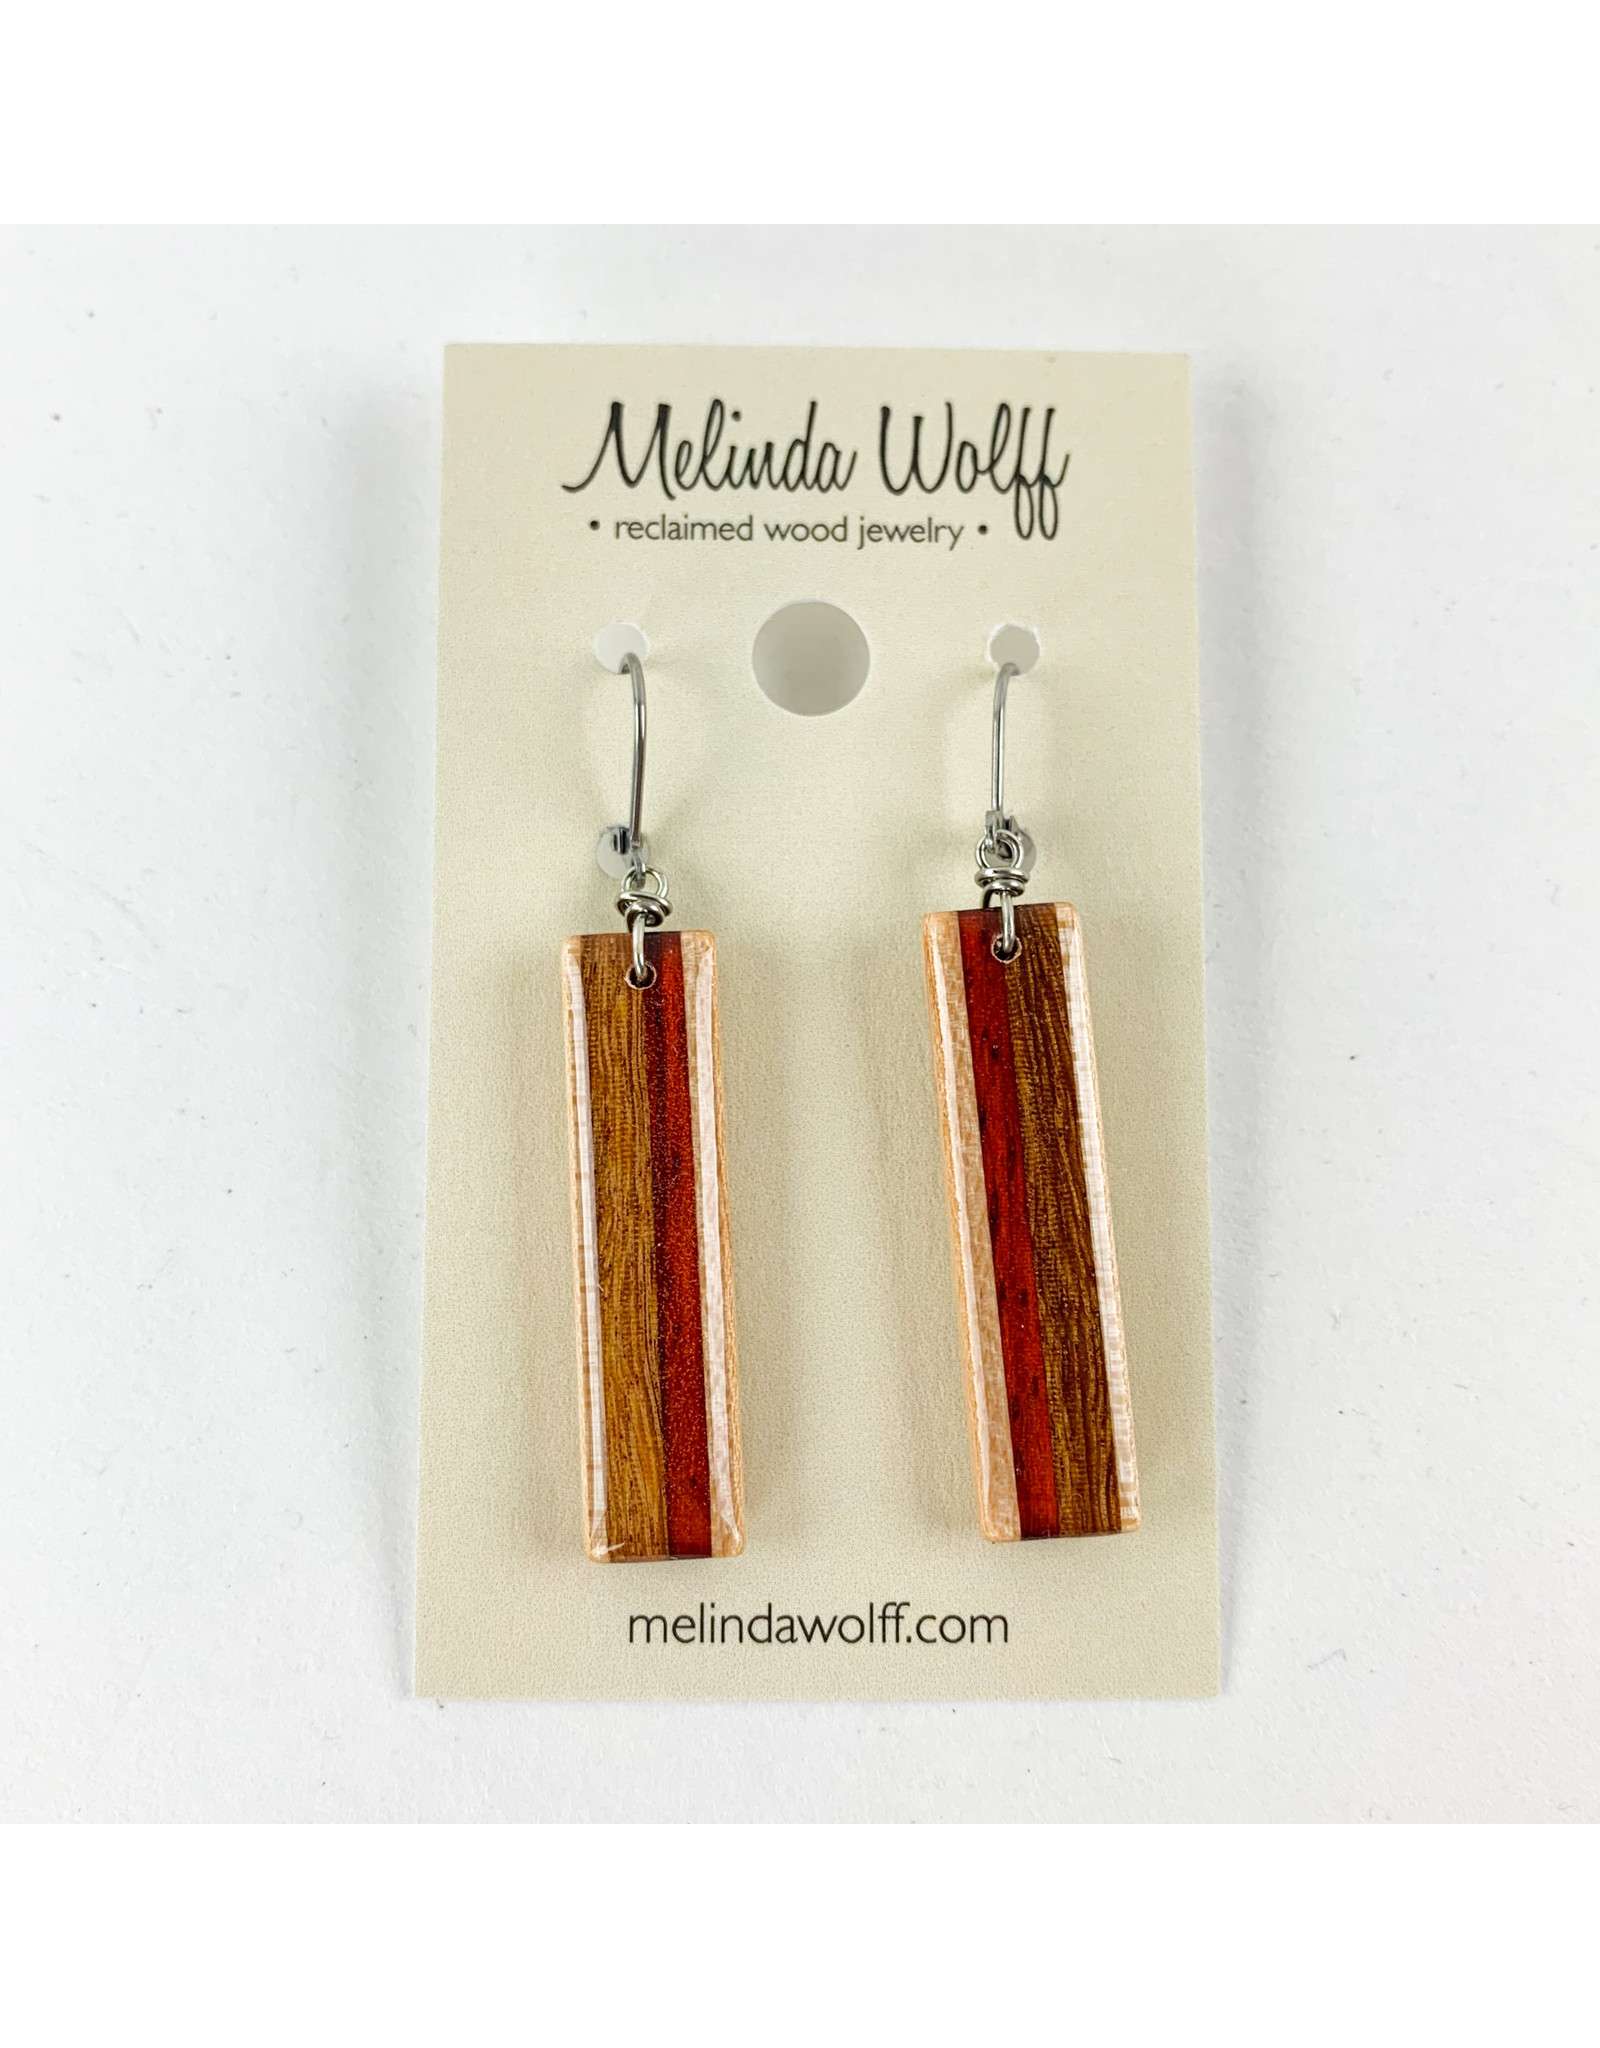 Melinda Wolff-consignment earrings rectangle, consignment E8-L